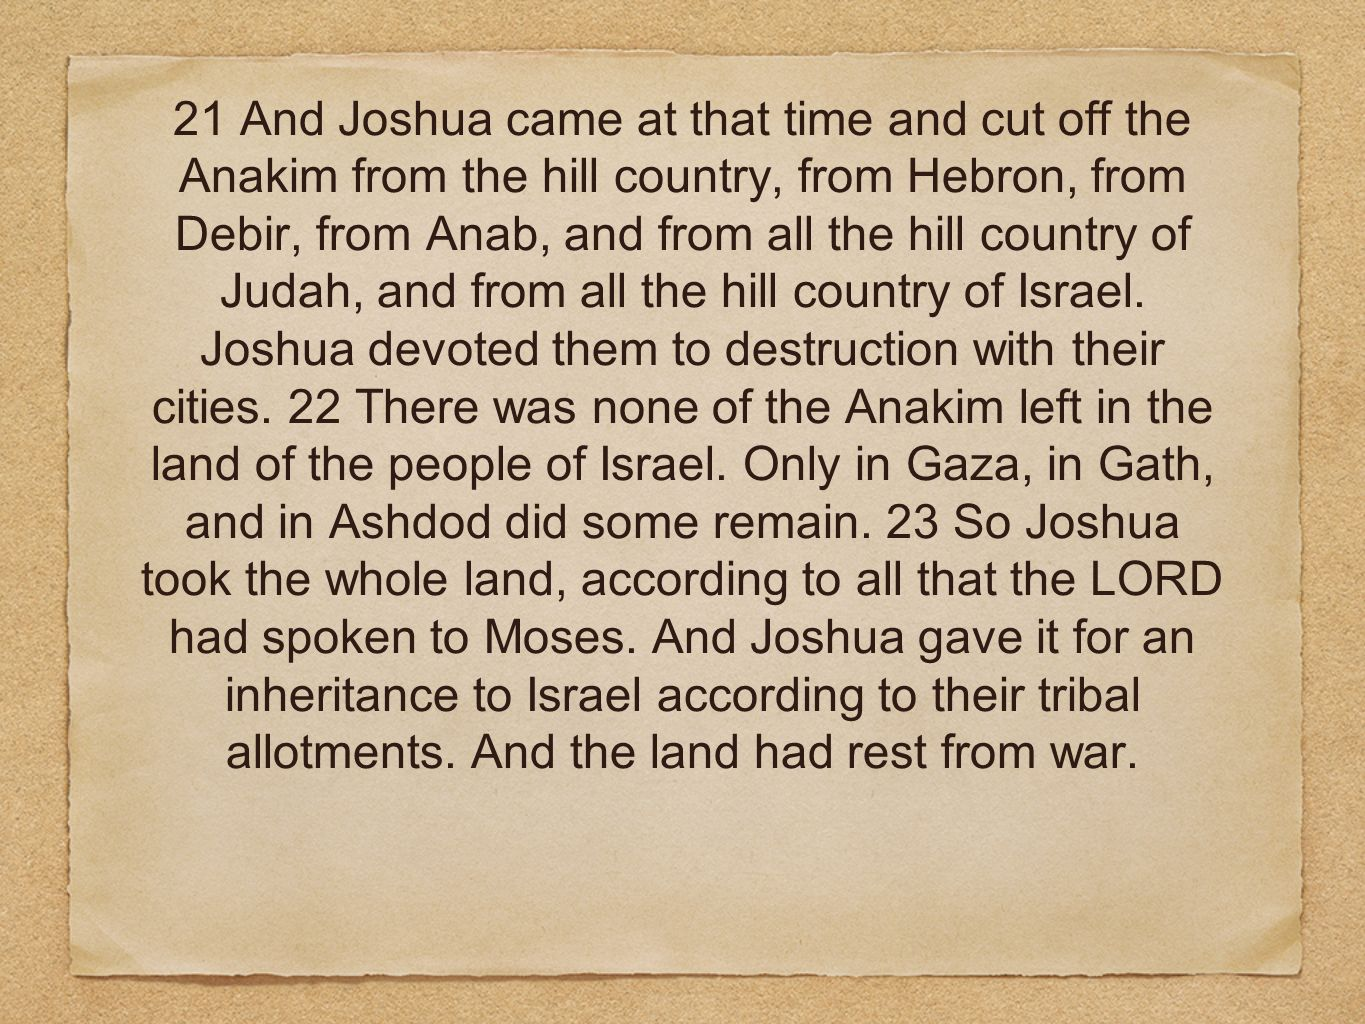 21 And Joshua came at that time and cut off the Anakim from the hill country, from Hebron, from Debir, from Anab, and from all the hill country of Judah, and from all the hill country of Israel.